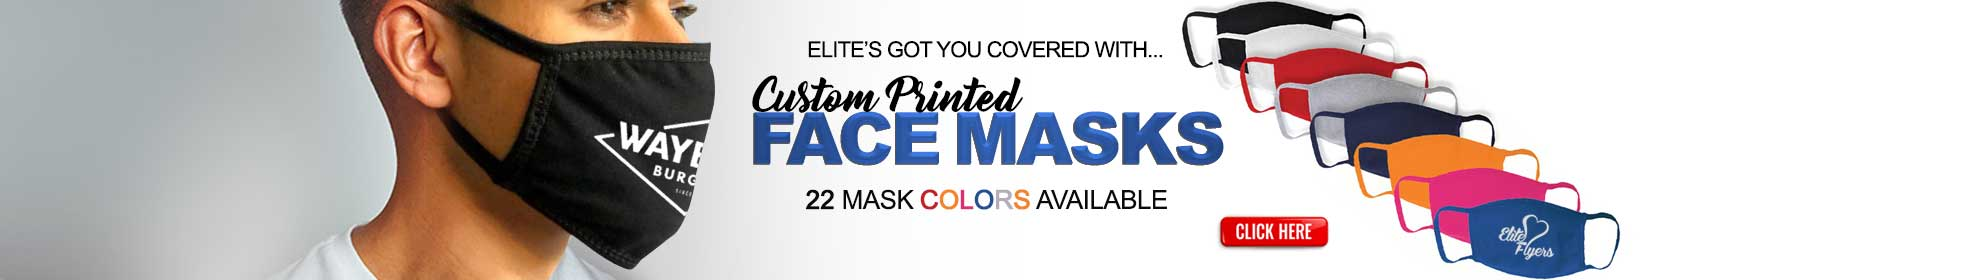 Custom Printed Mask, Face Masks and Face Covers